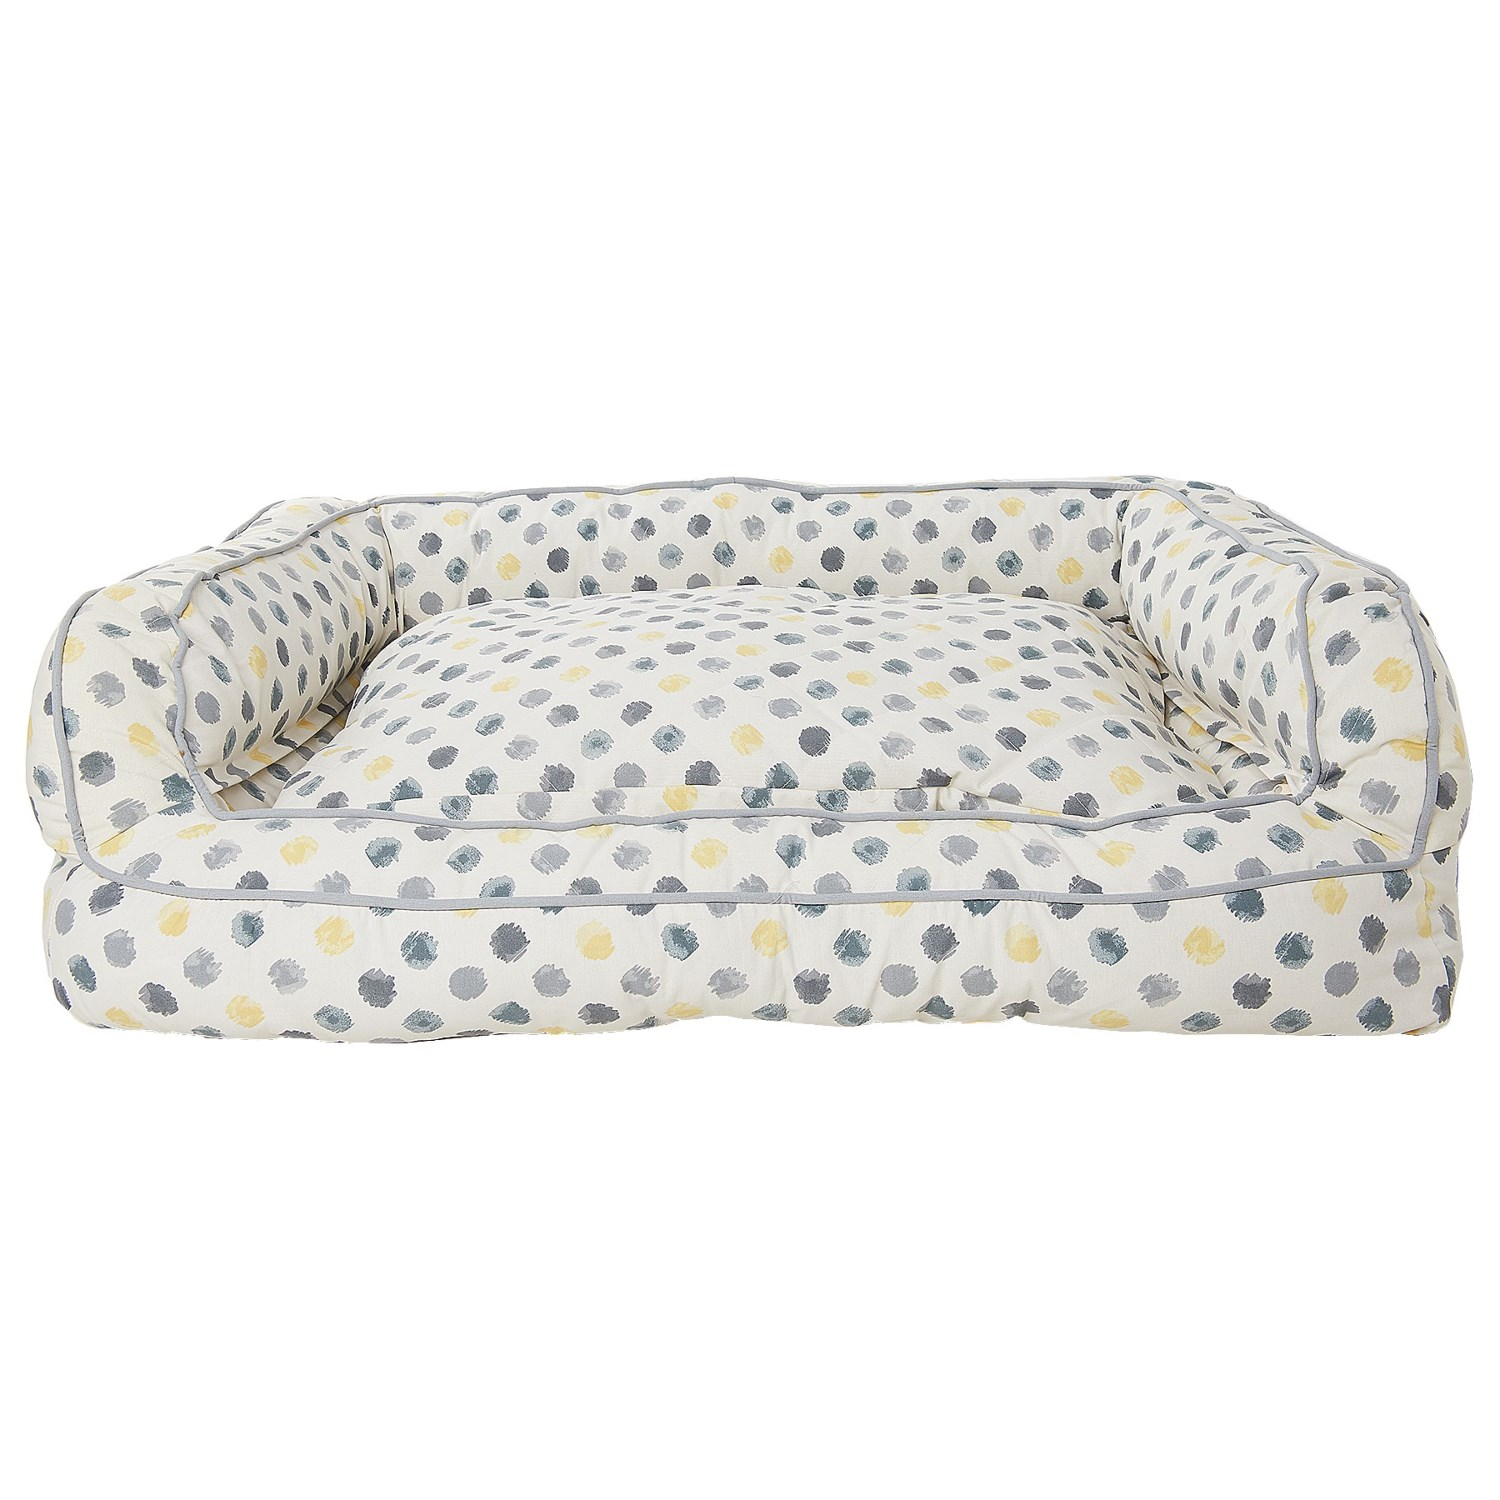 cynthia rowley dot canvas rectangle couch bolster dog bed xxl 43x29u201d